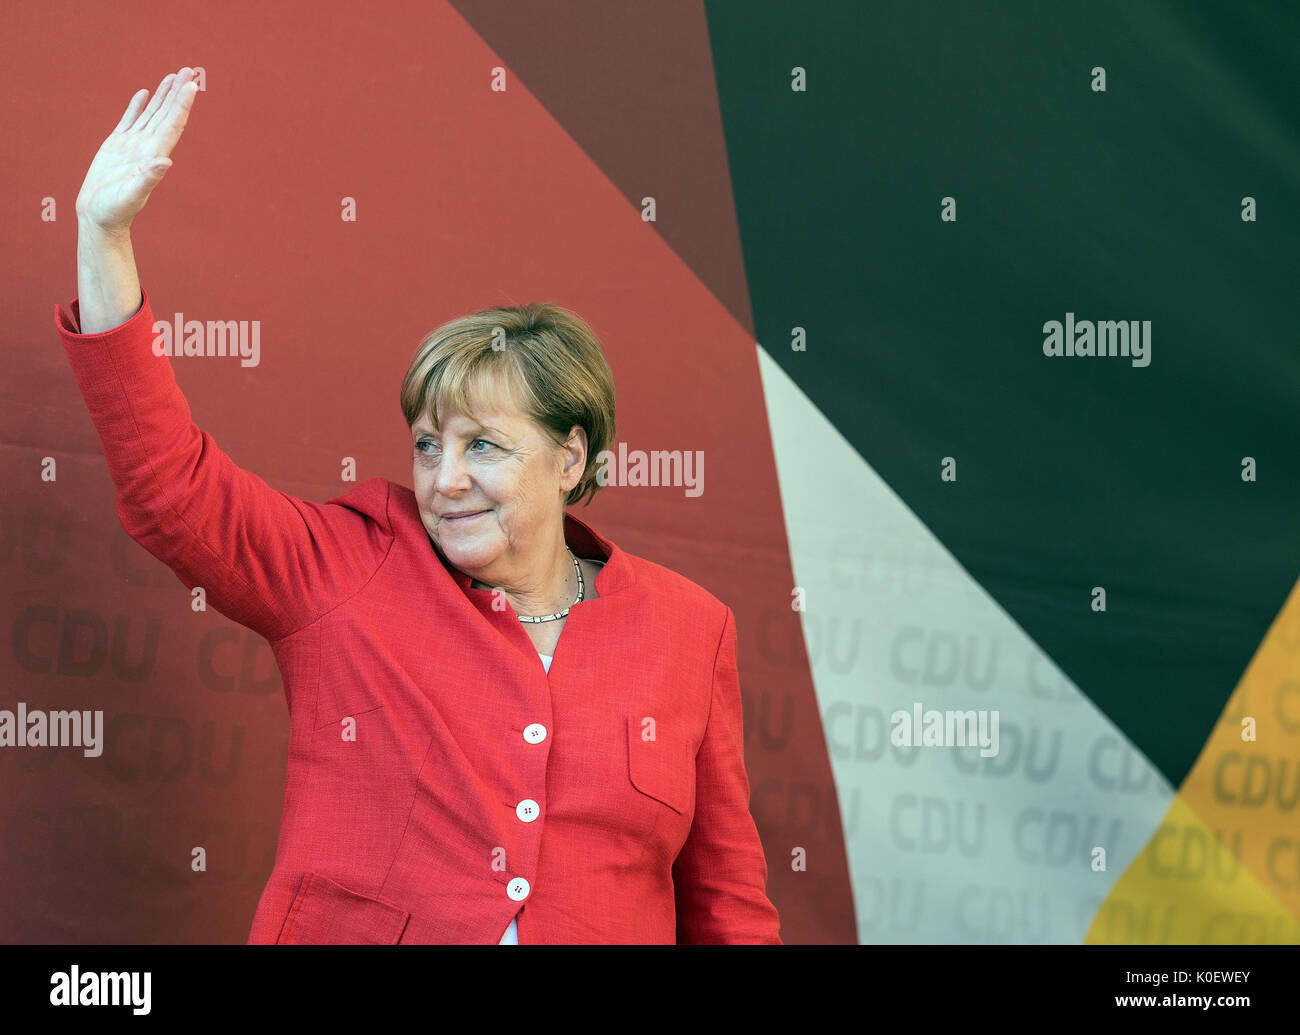 Muenster, Germany. 22nd Aug, 2017. German Chancellor Angela Merkel (CDU) waves to the spectators during her election campaign tour in North Rhine-Westphalia in Muenster, Germany, 22 August 2017. Photo: Federico Gambarini/dpa/Alamy Live News - Stock Image